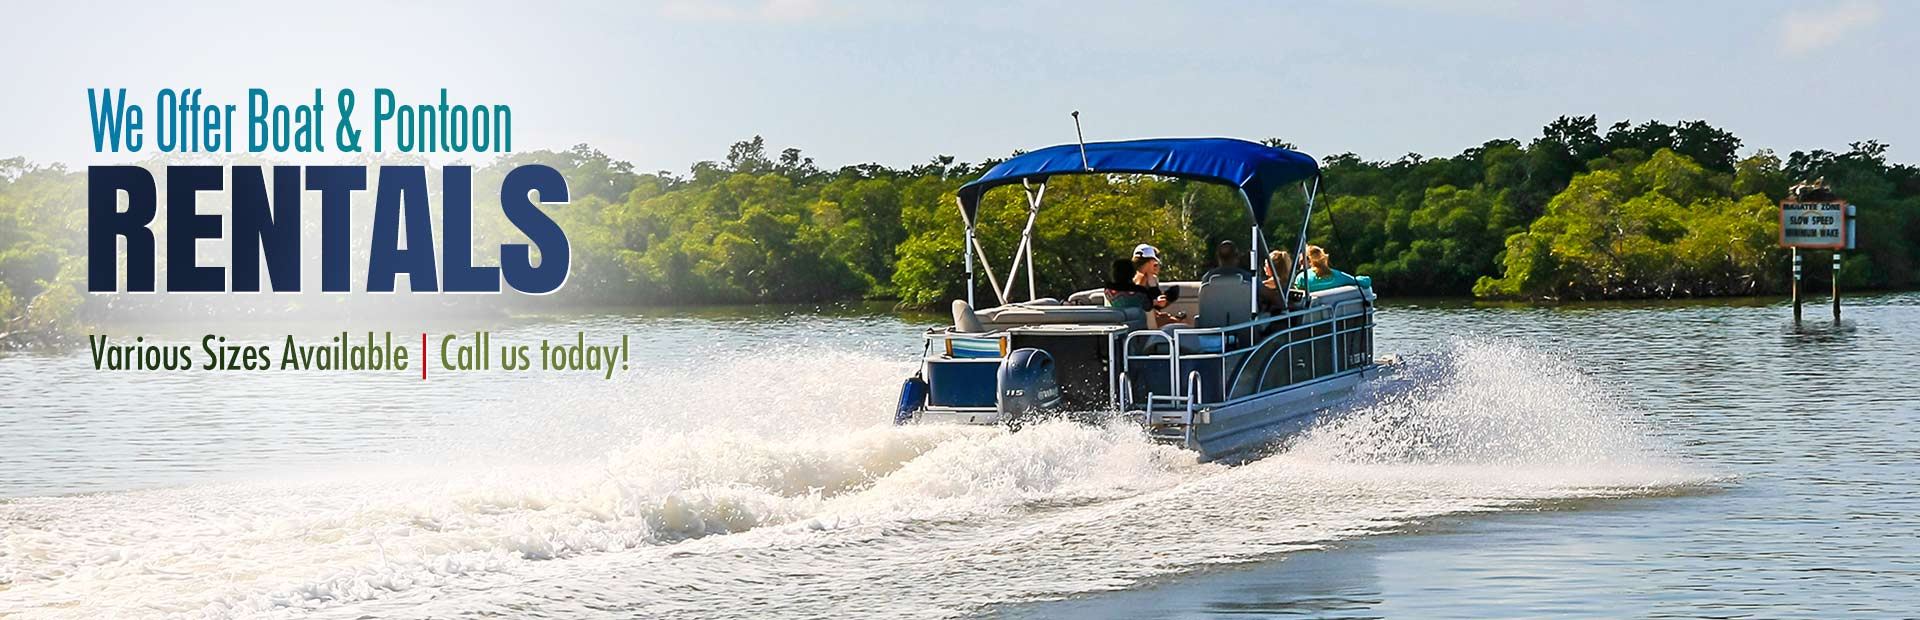 We offer Houseboat and pontoon rentals. Call us today!